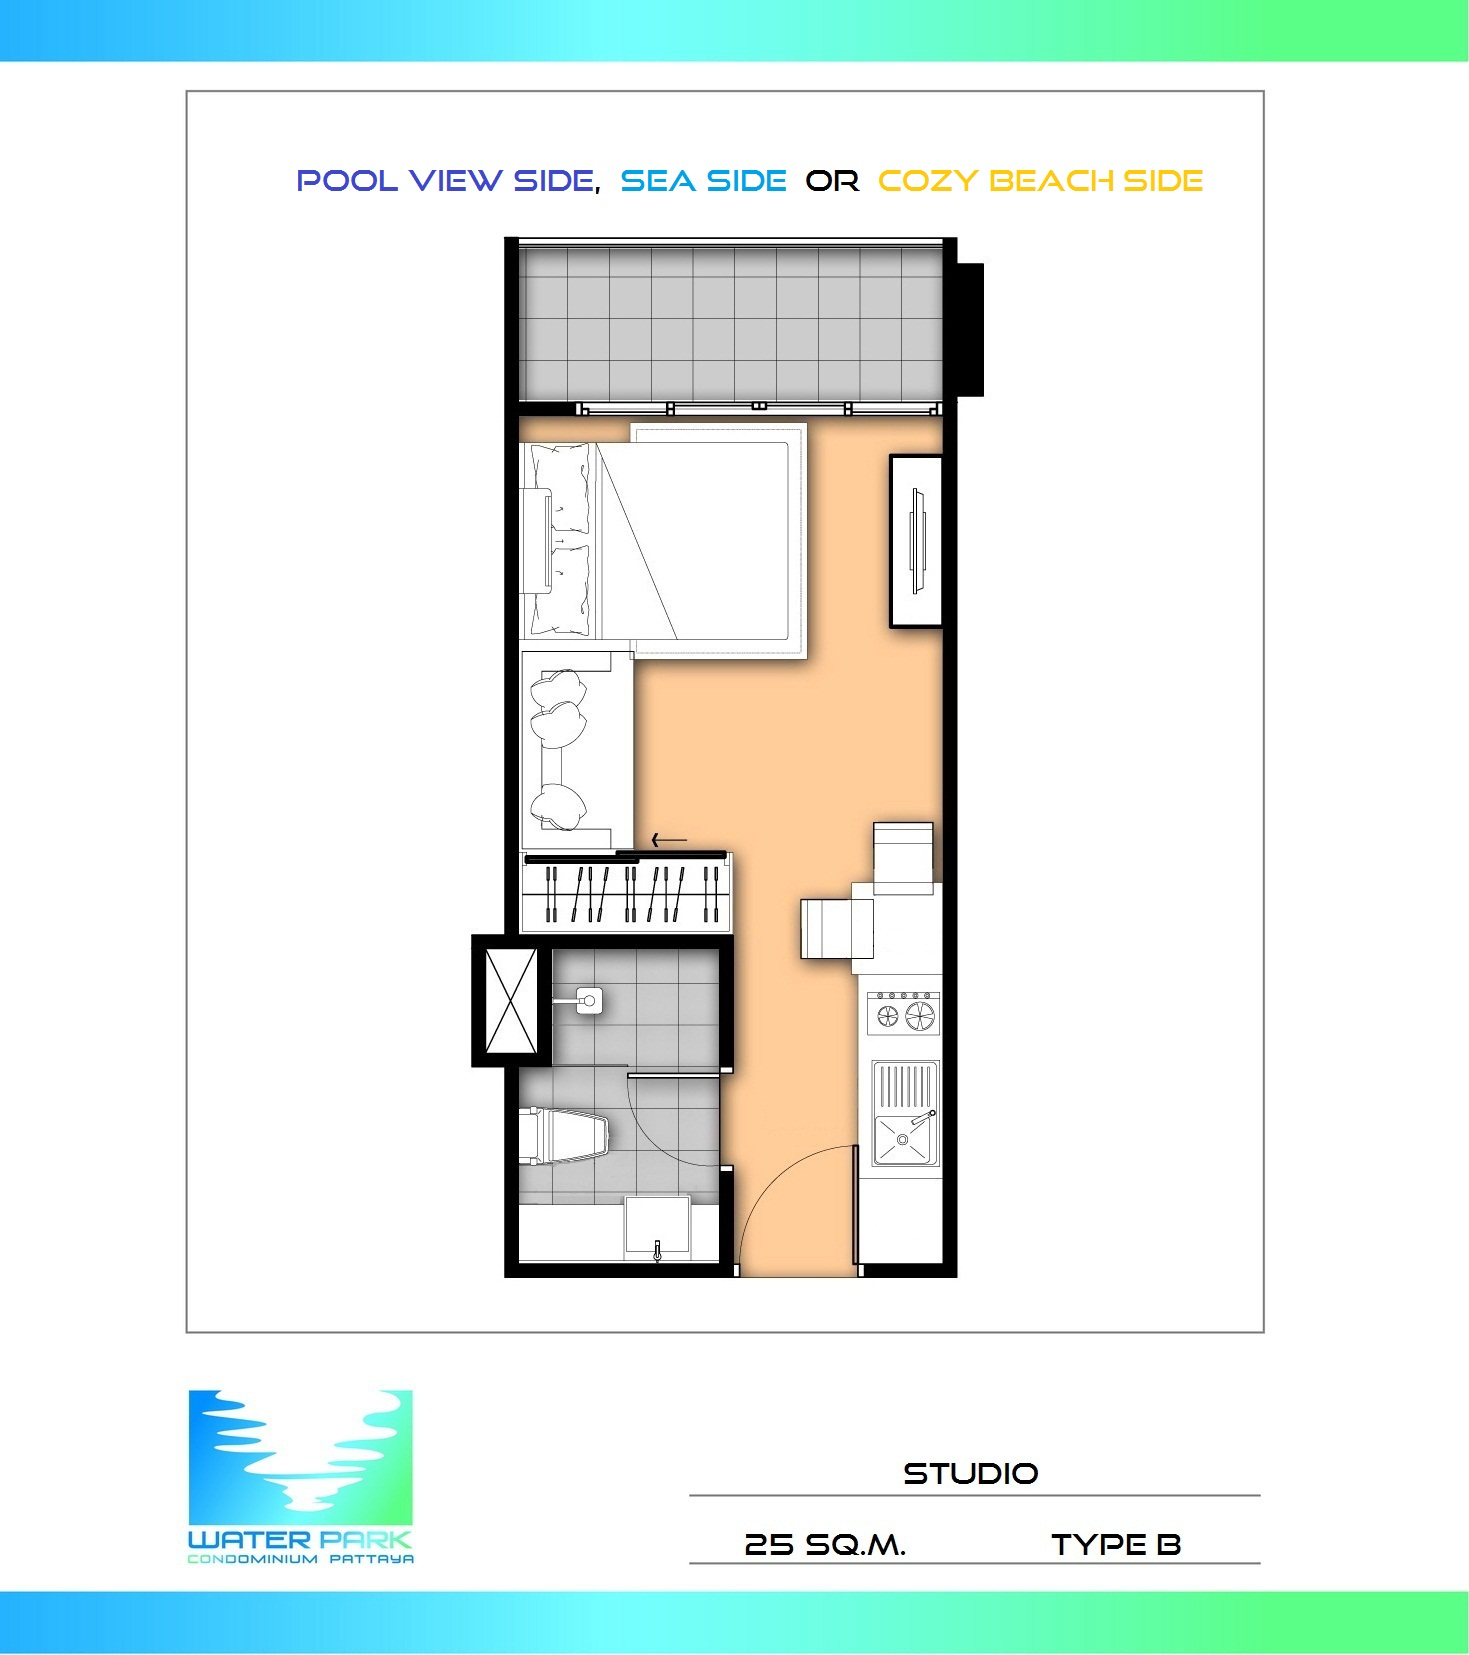 Two Garage Condo Developments Planned For Martin City Area: Water Park Modern Studio Condo With Balcony At Top